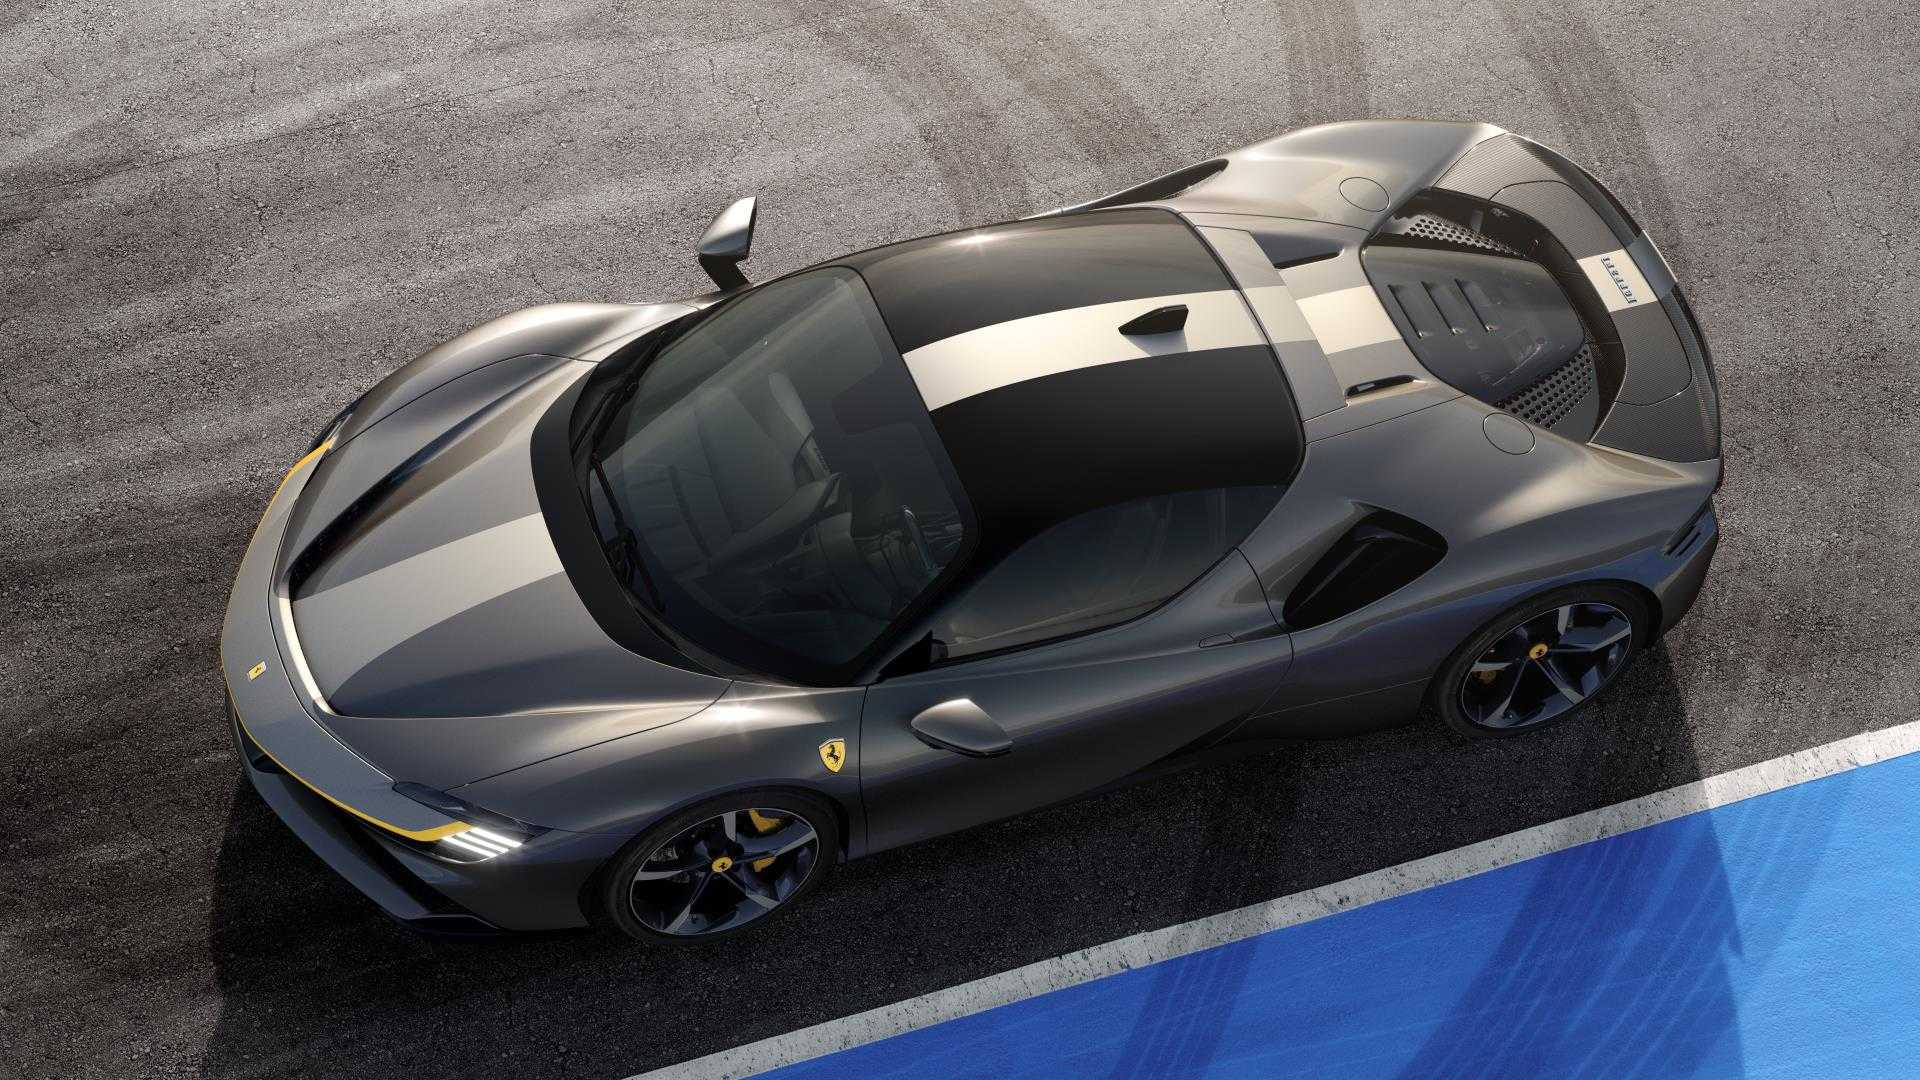 Ferrari To Reveal Two New Cars In 2020